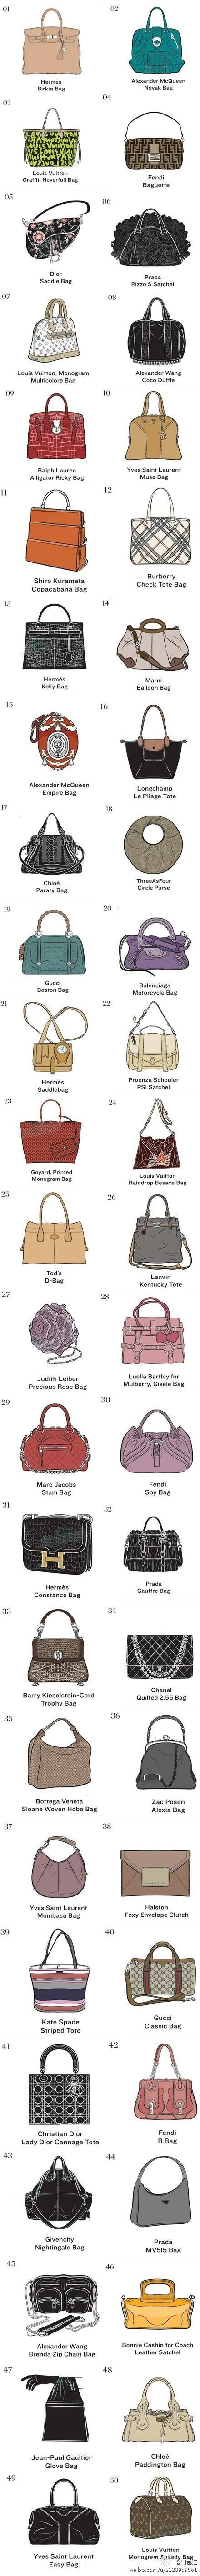 WOW!!!! All kinds of handbags!: